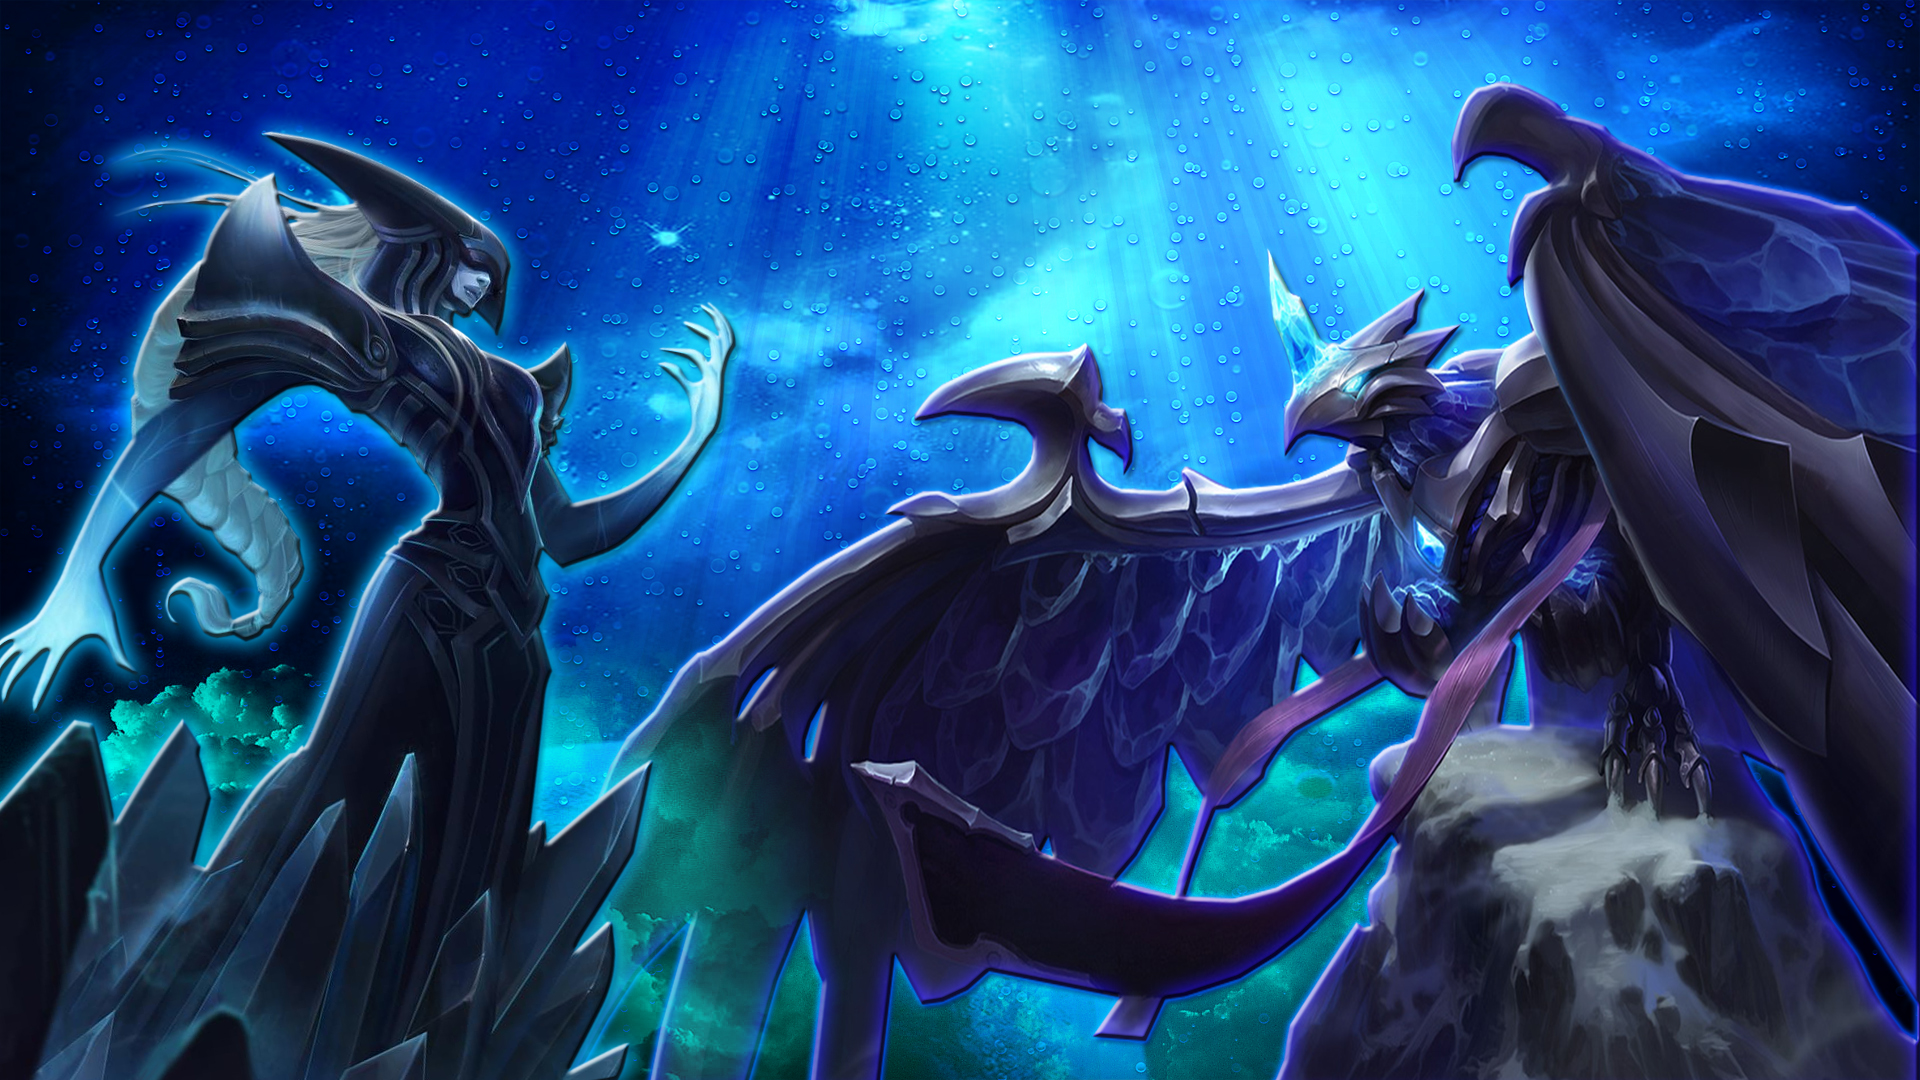 lol_lissandra_anivia____without_text__by_primefross-d63m25x